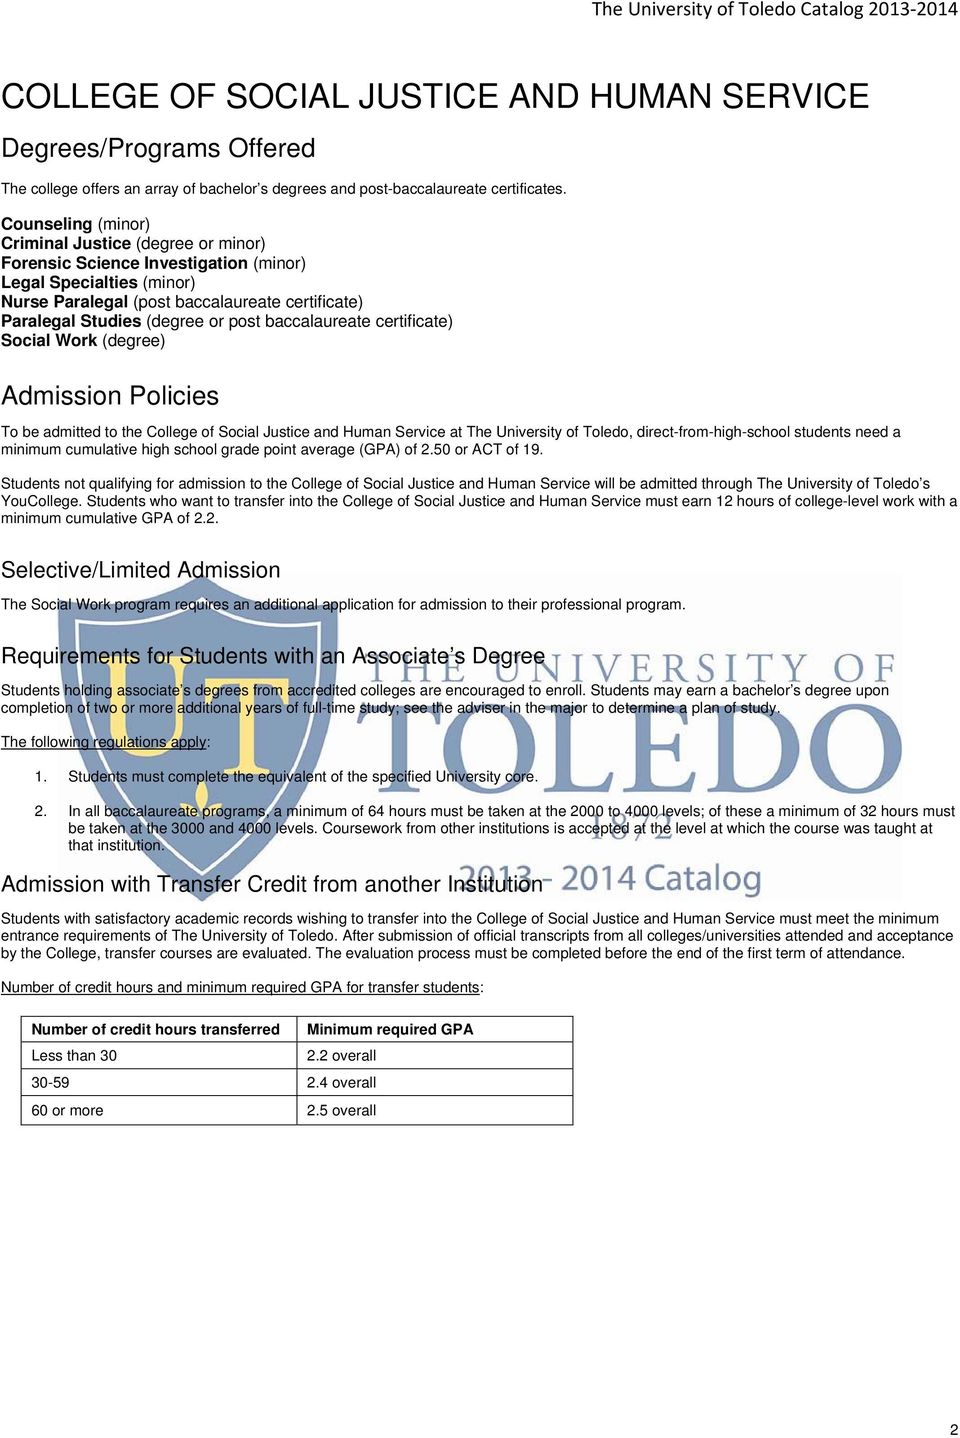 post baccalaureate certificate) Social Work (degree) Admission Policies To be admitted to the College of Social Justice and Human Service at The University of Toledo, direct-from-high-school students